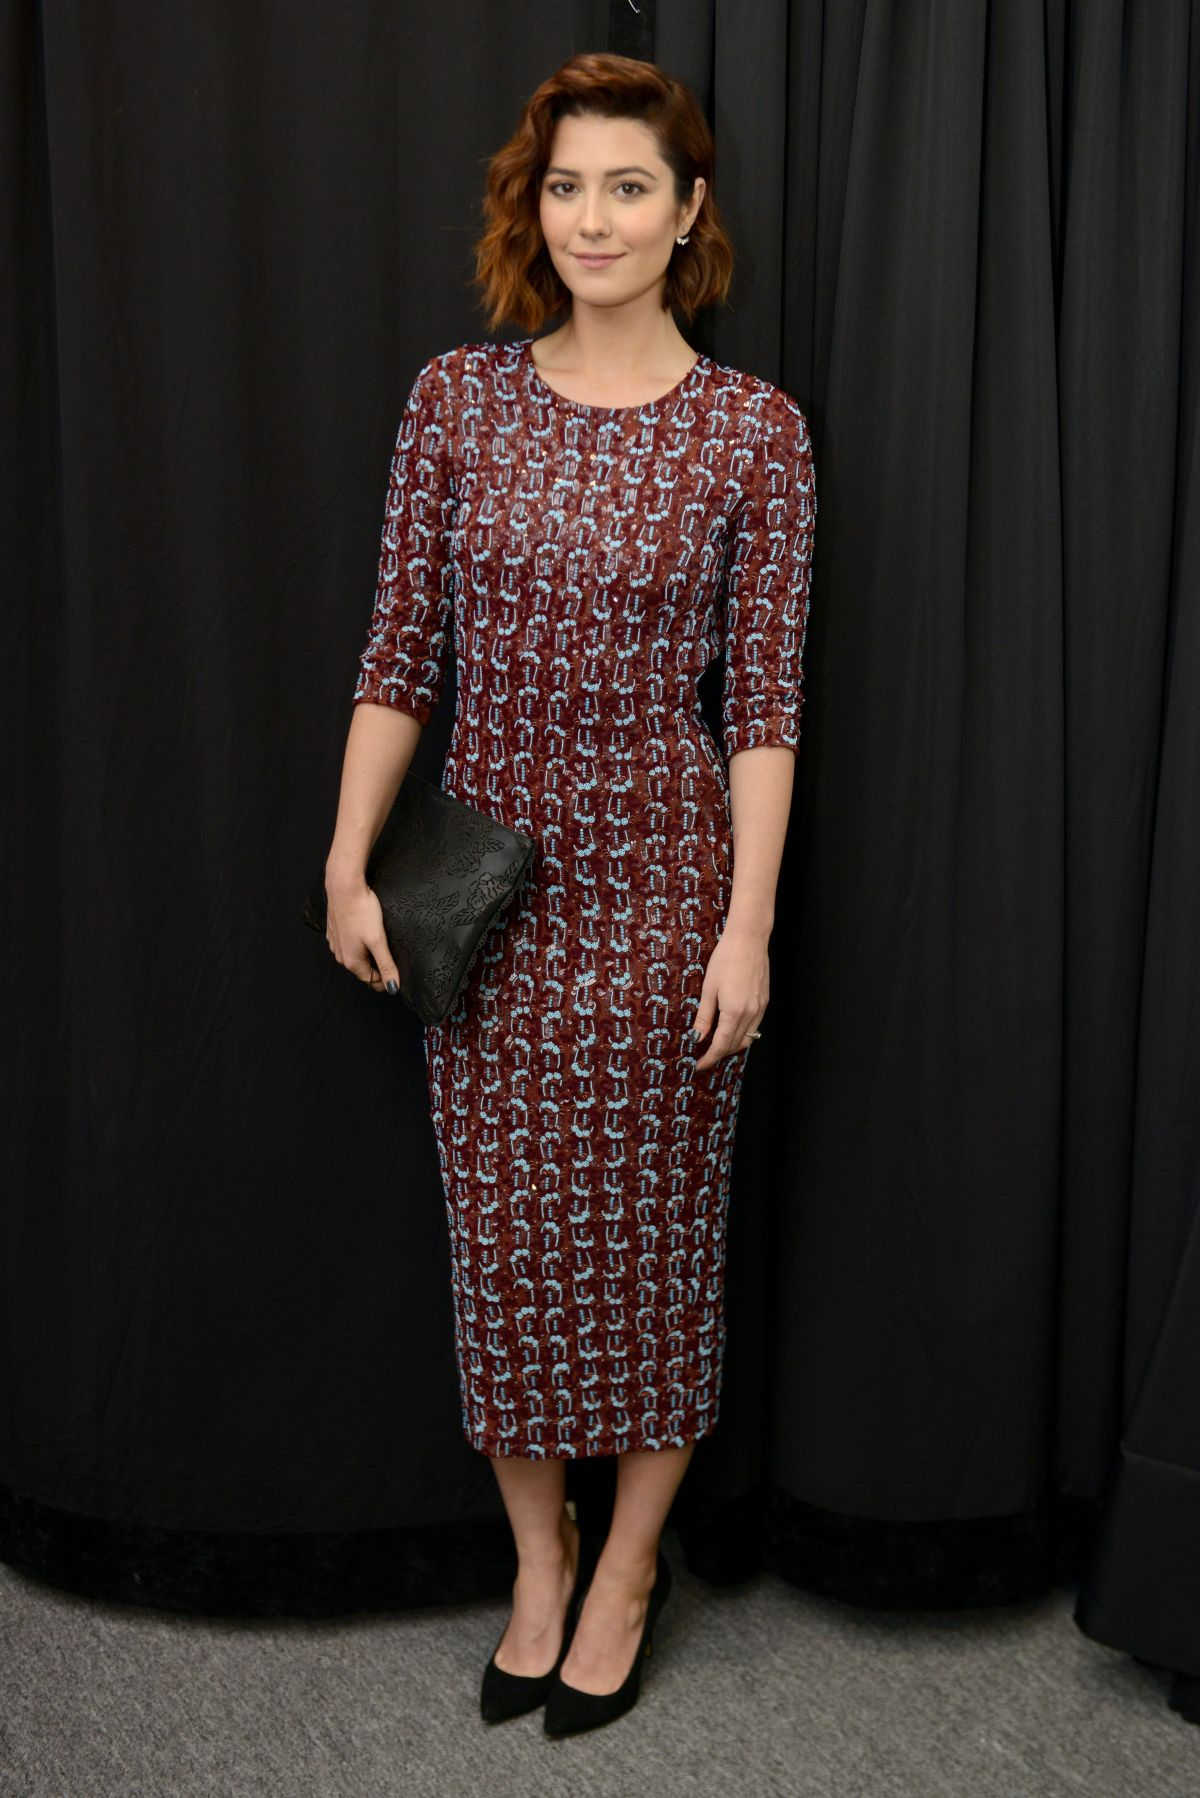 mary elizabeth winstead at penny packham fashion show in new york